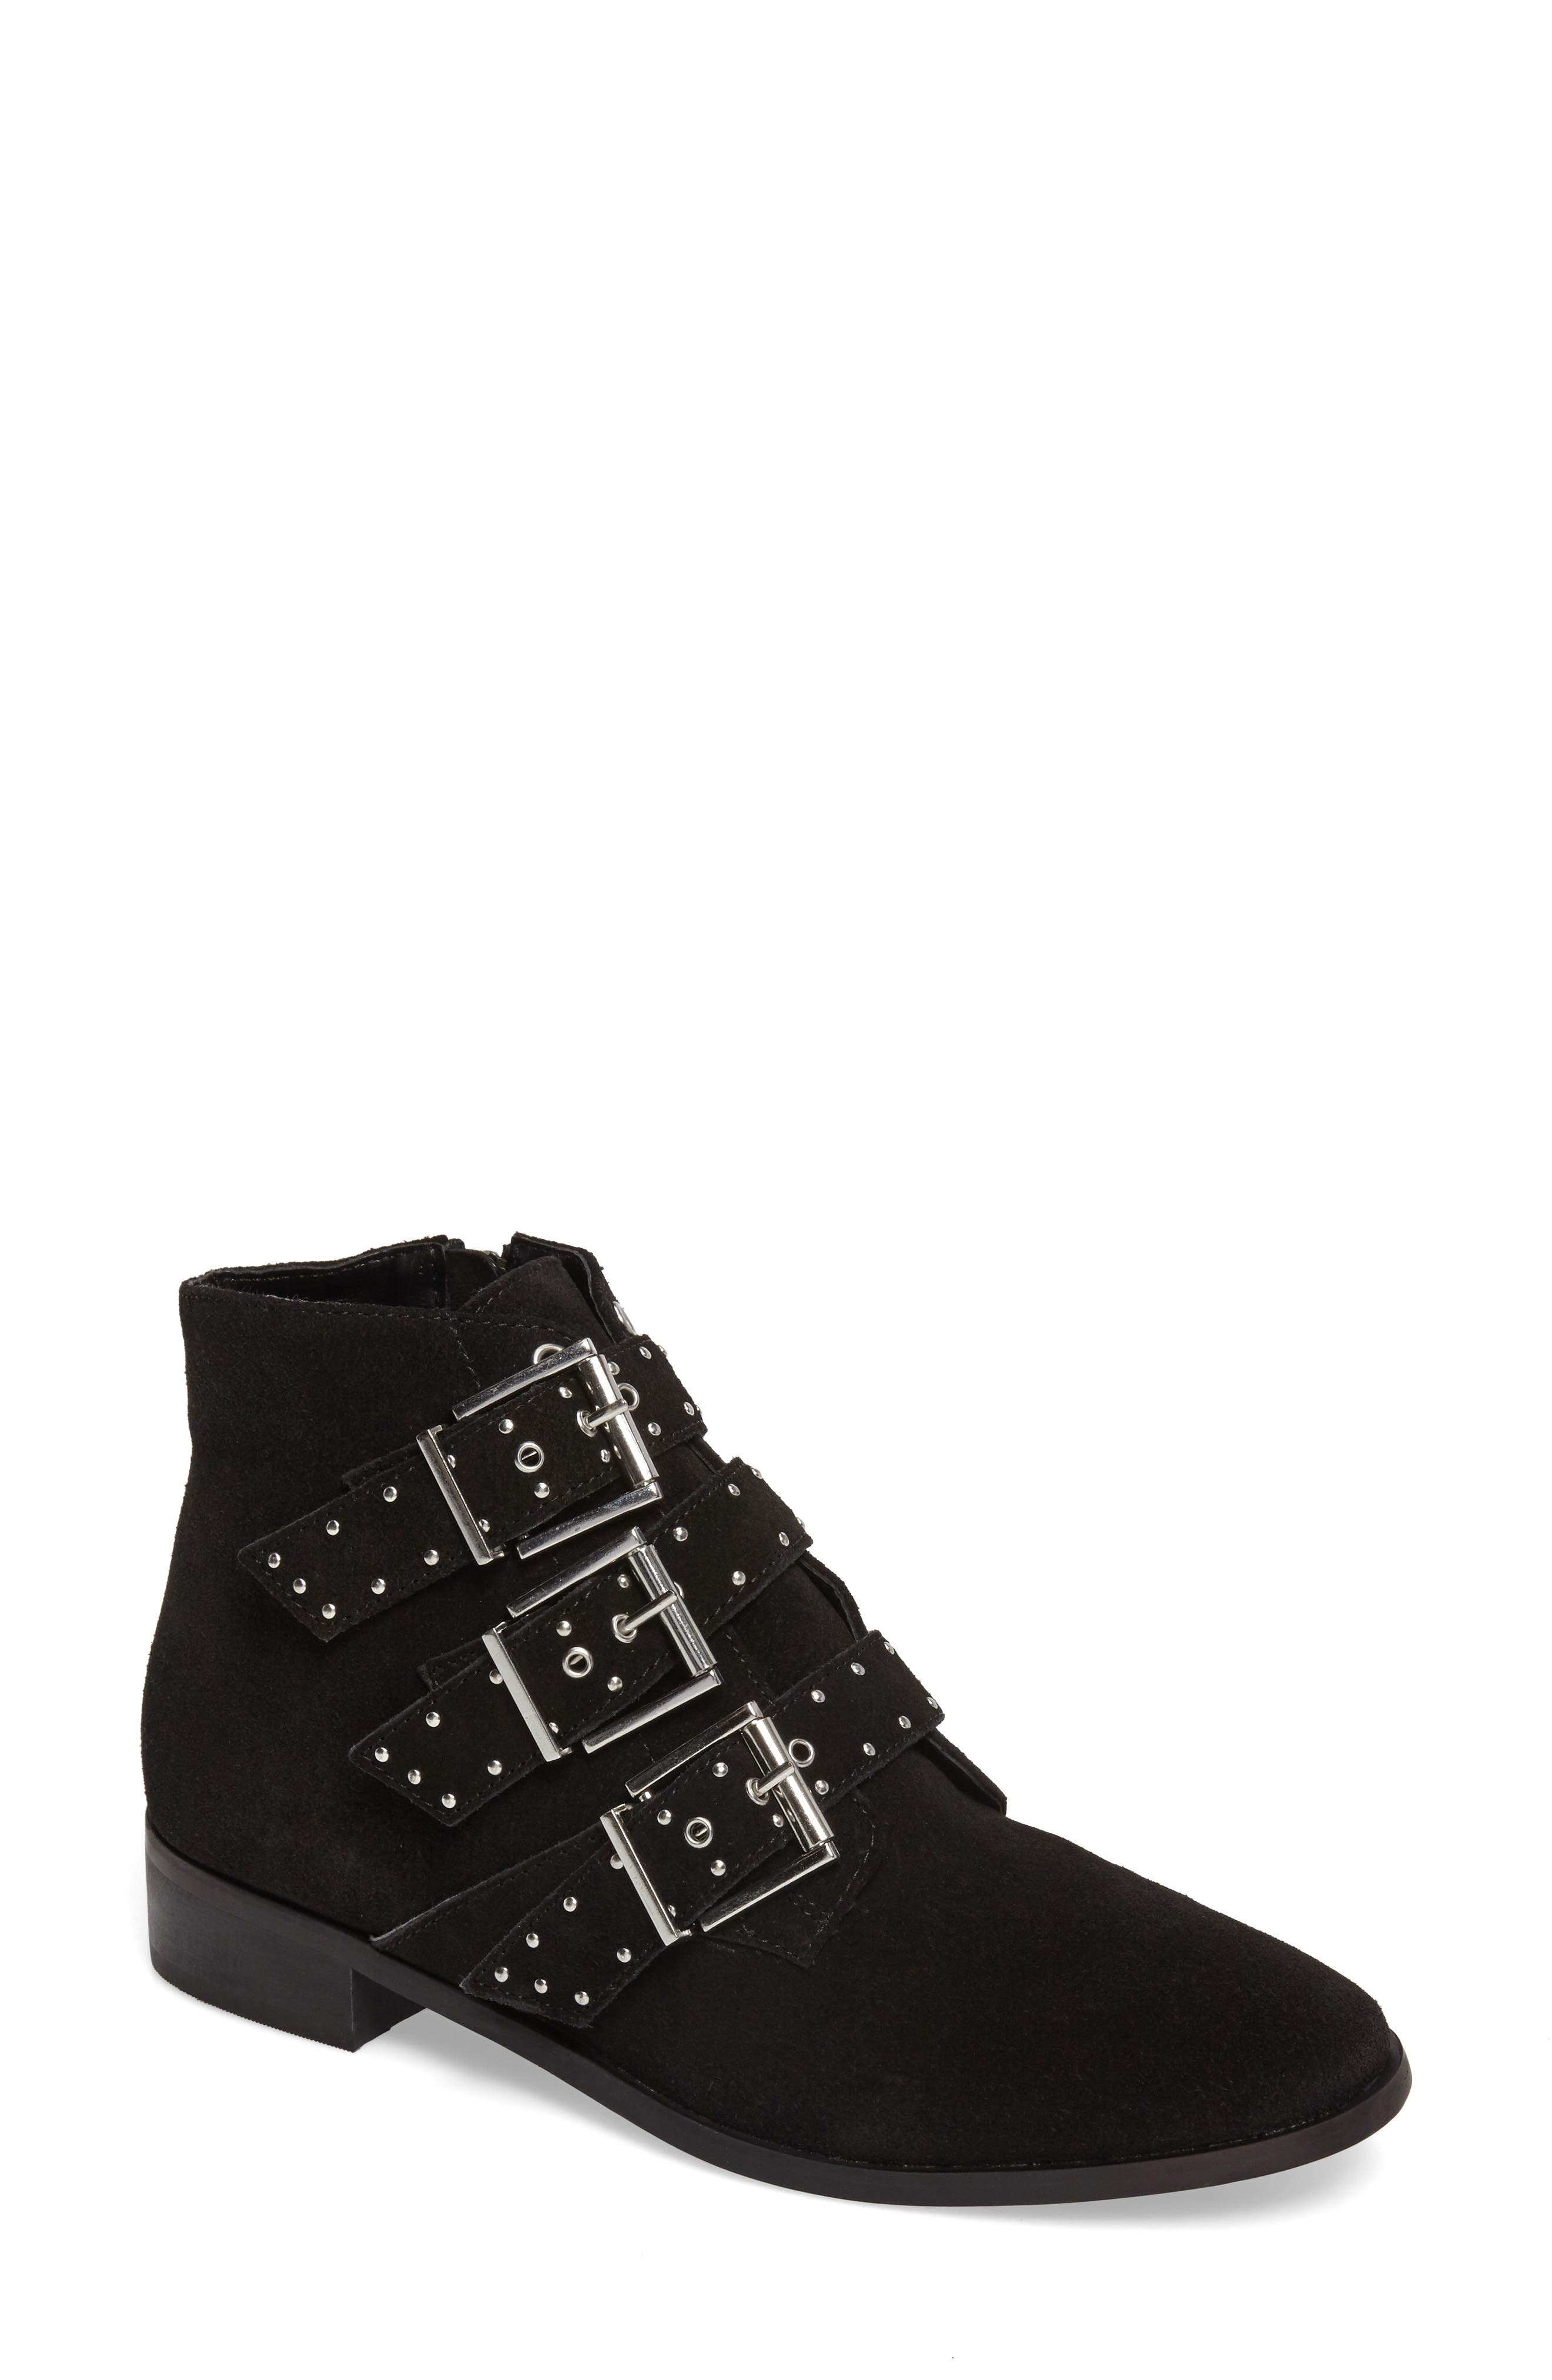 Krown Studded Bootie,                         Main,                         color,